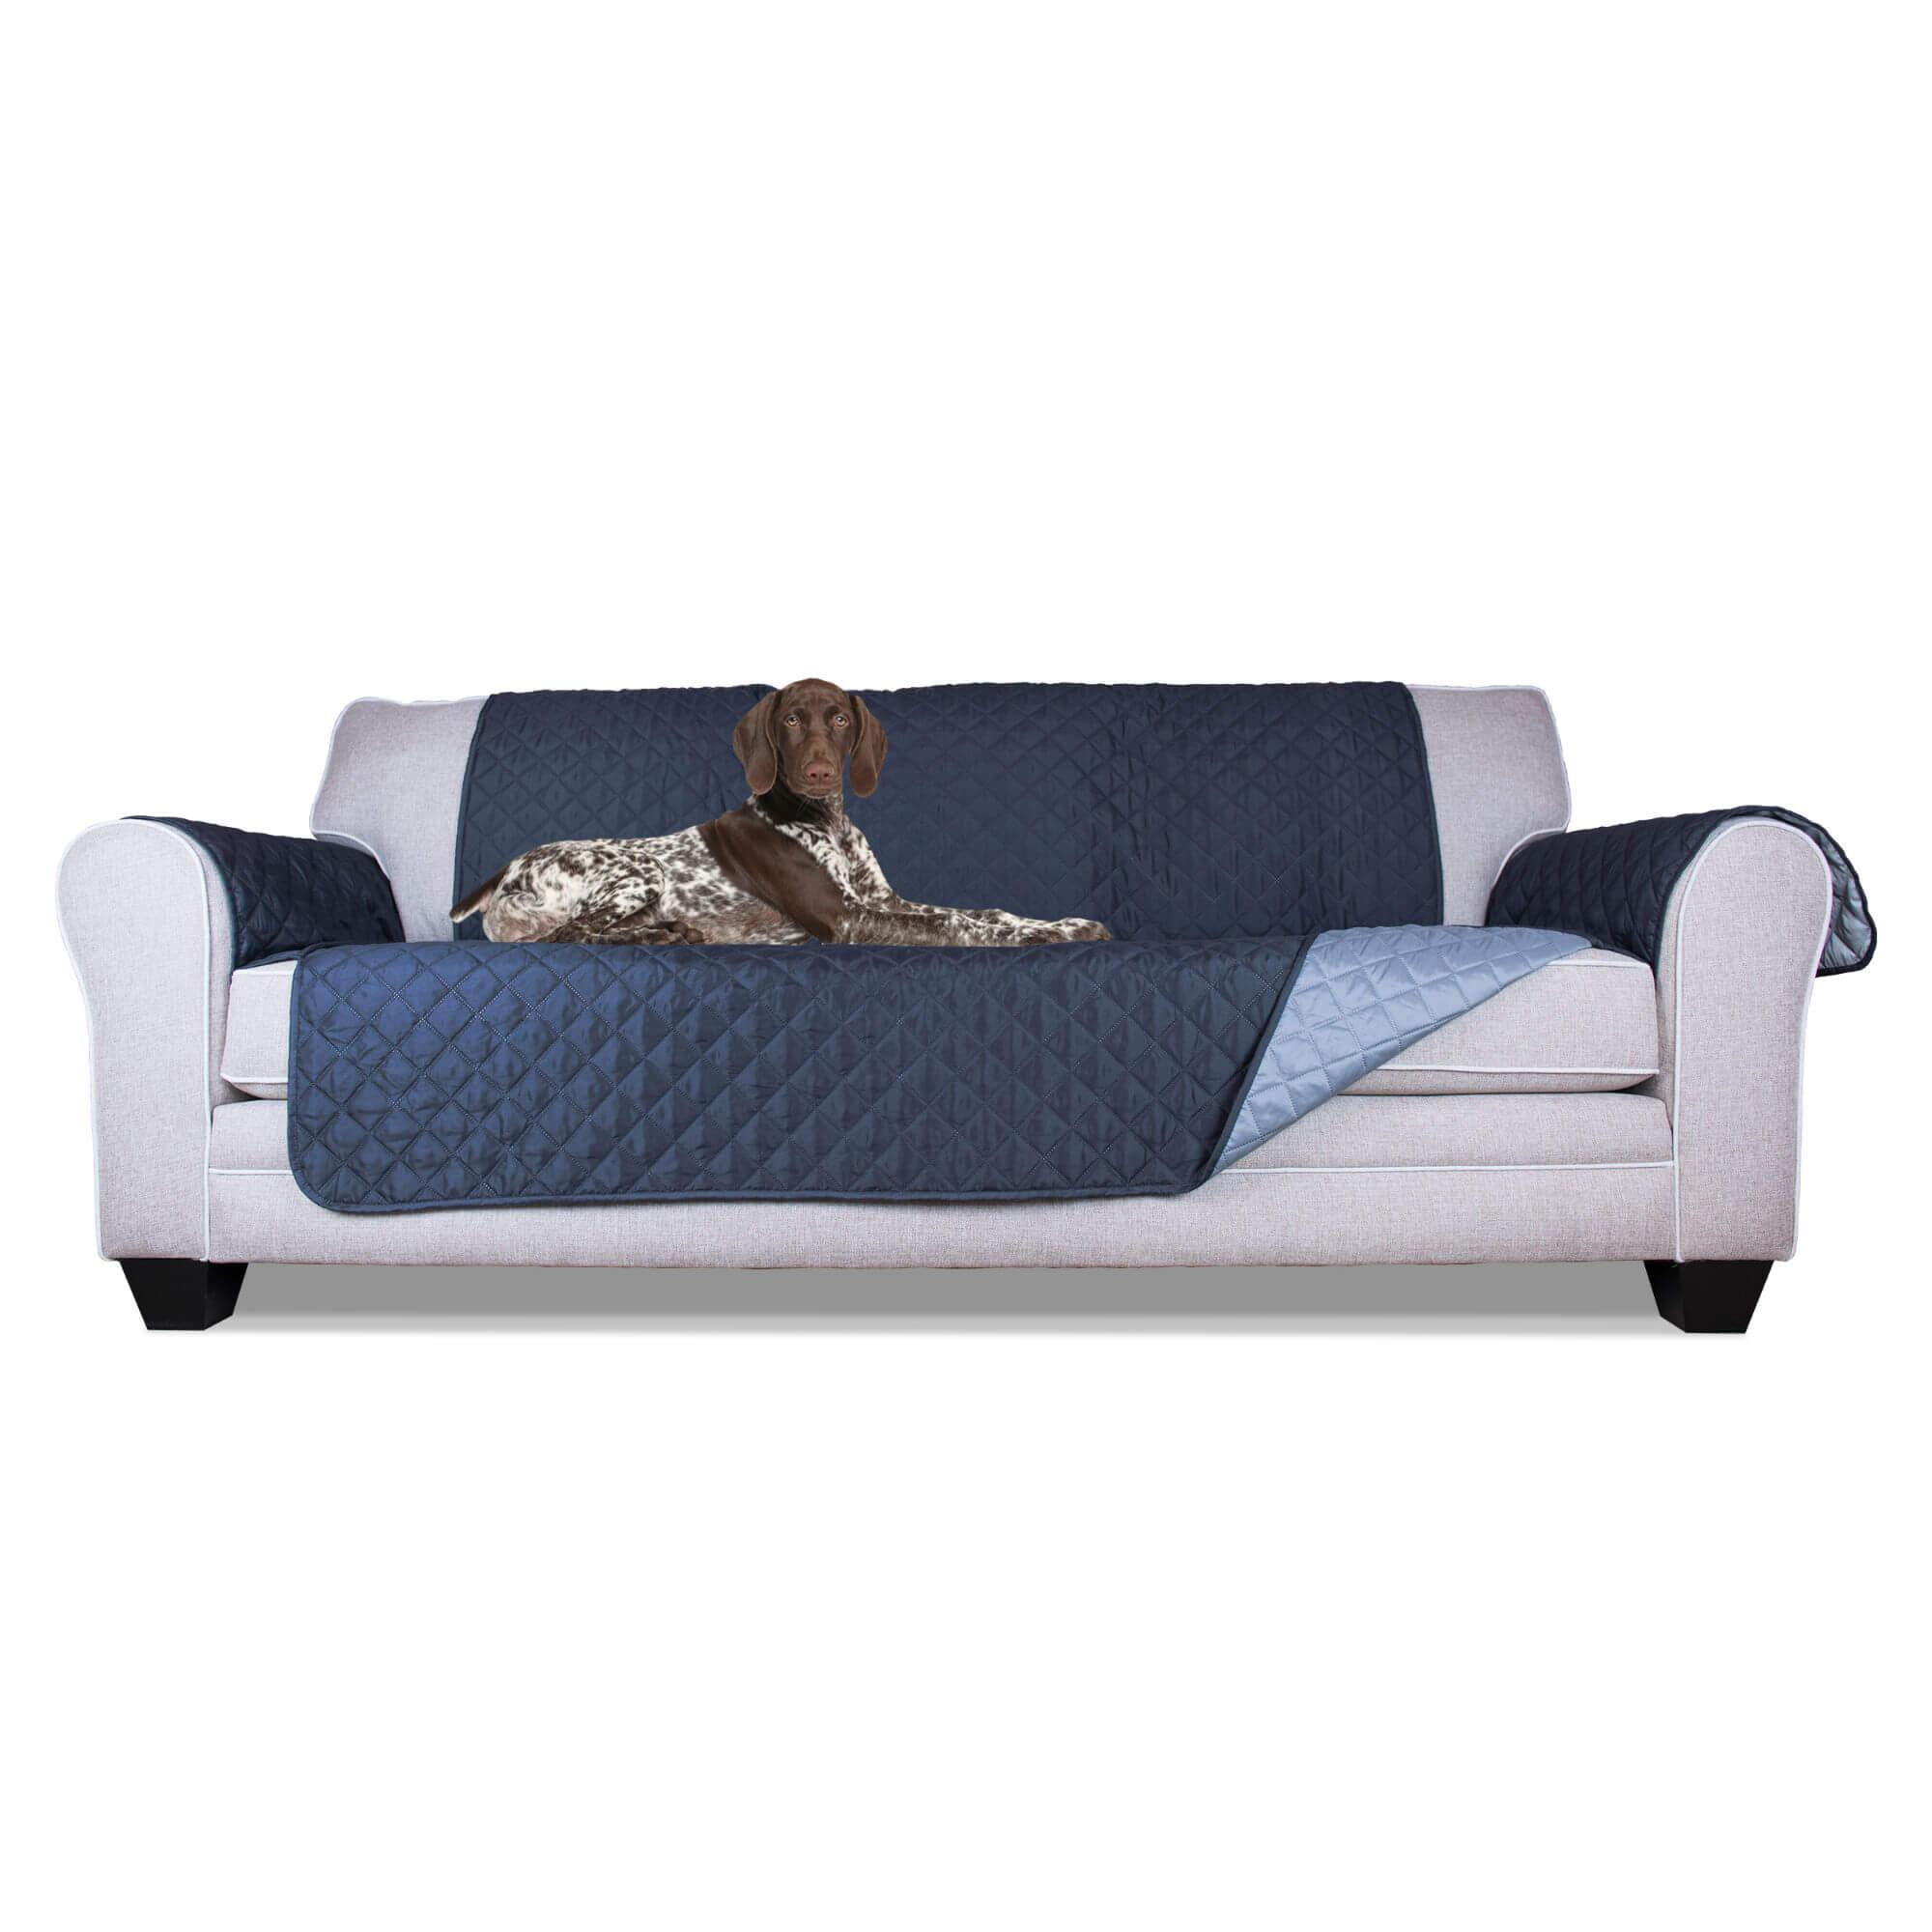 Reversible Sofa Protector - Pet Furniture Cov...